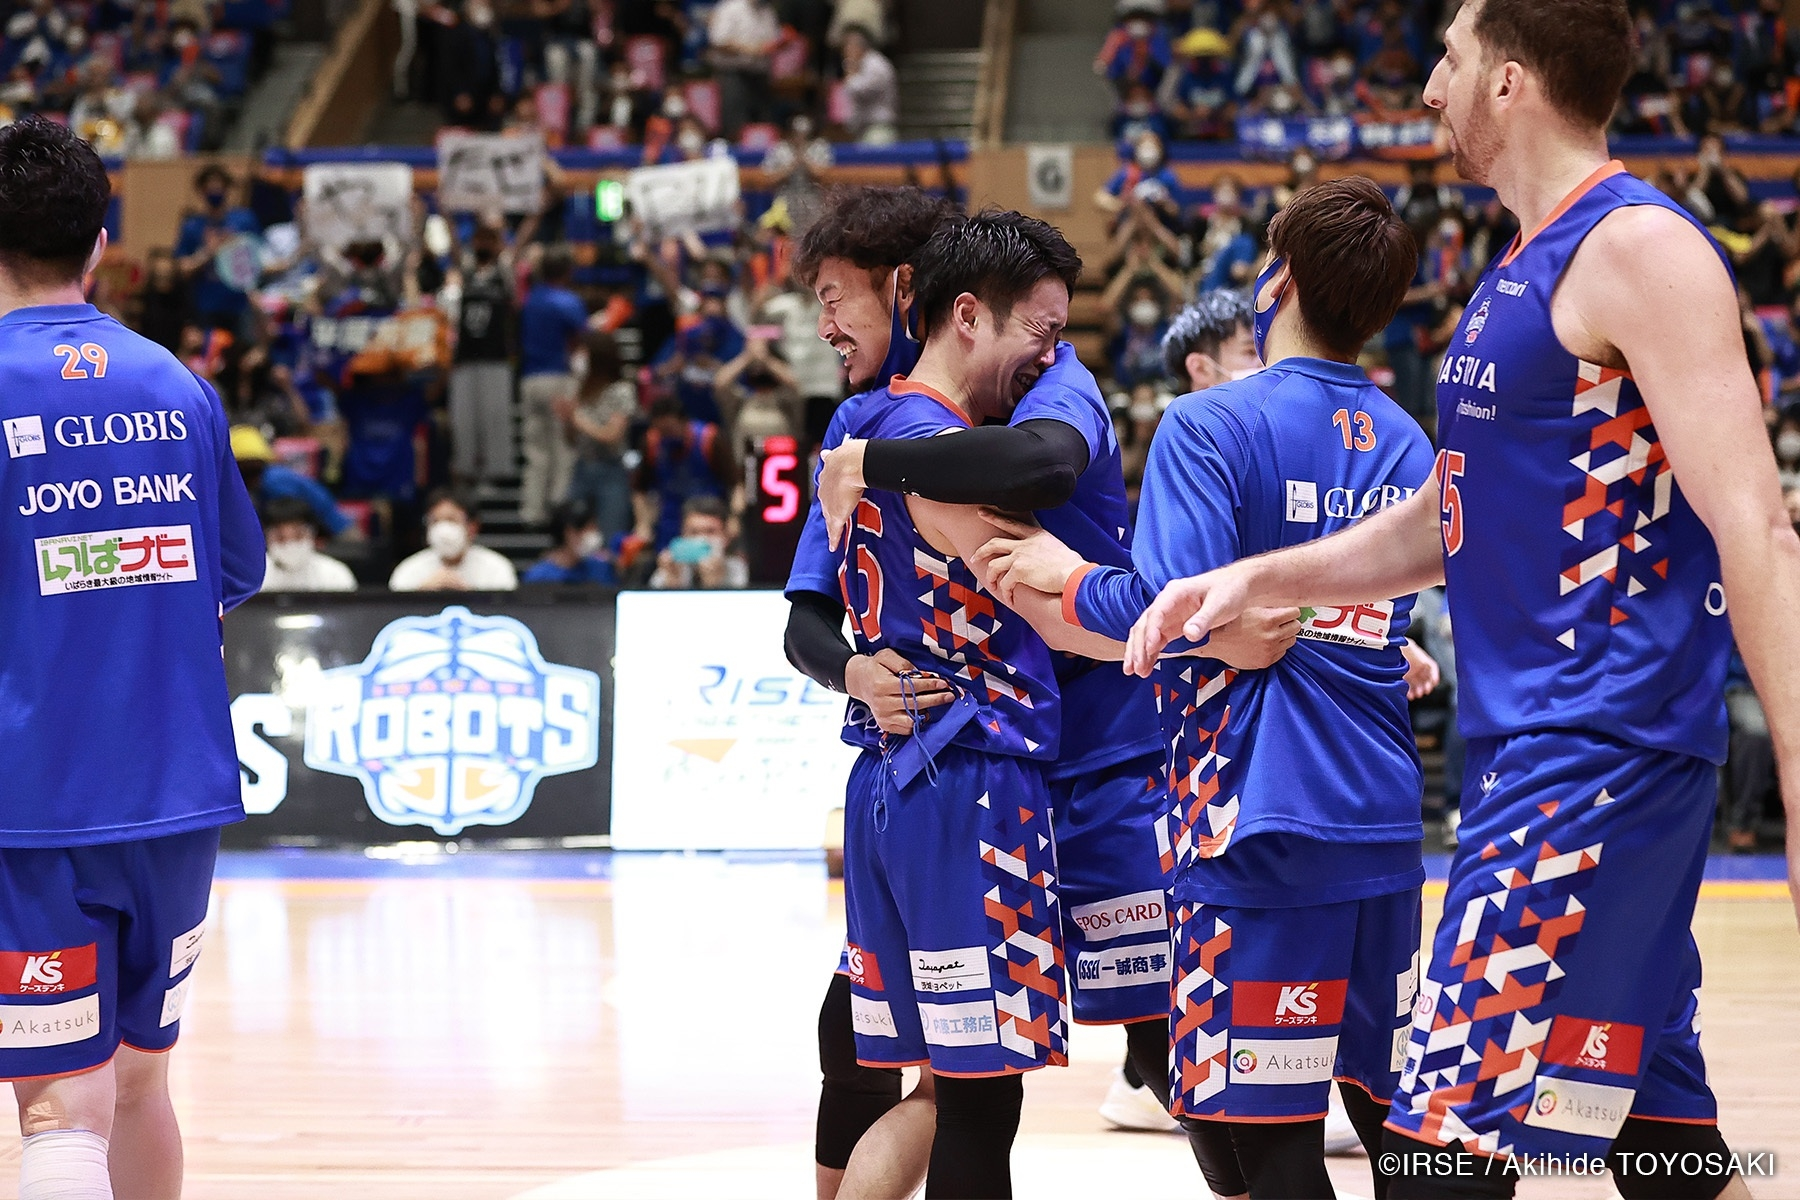 【AFTER GAME】ケーズデンキ presents B2 PLAYOFFS SEMIFINALS 2020-21 仙台戦(5/15~16)~皆で勝ち取ったB1昇格。そして、いざ最終決戦へ~